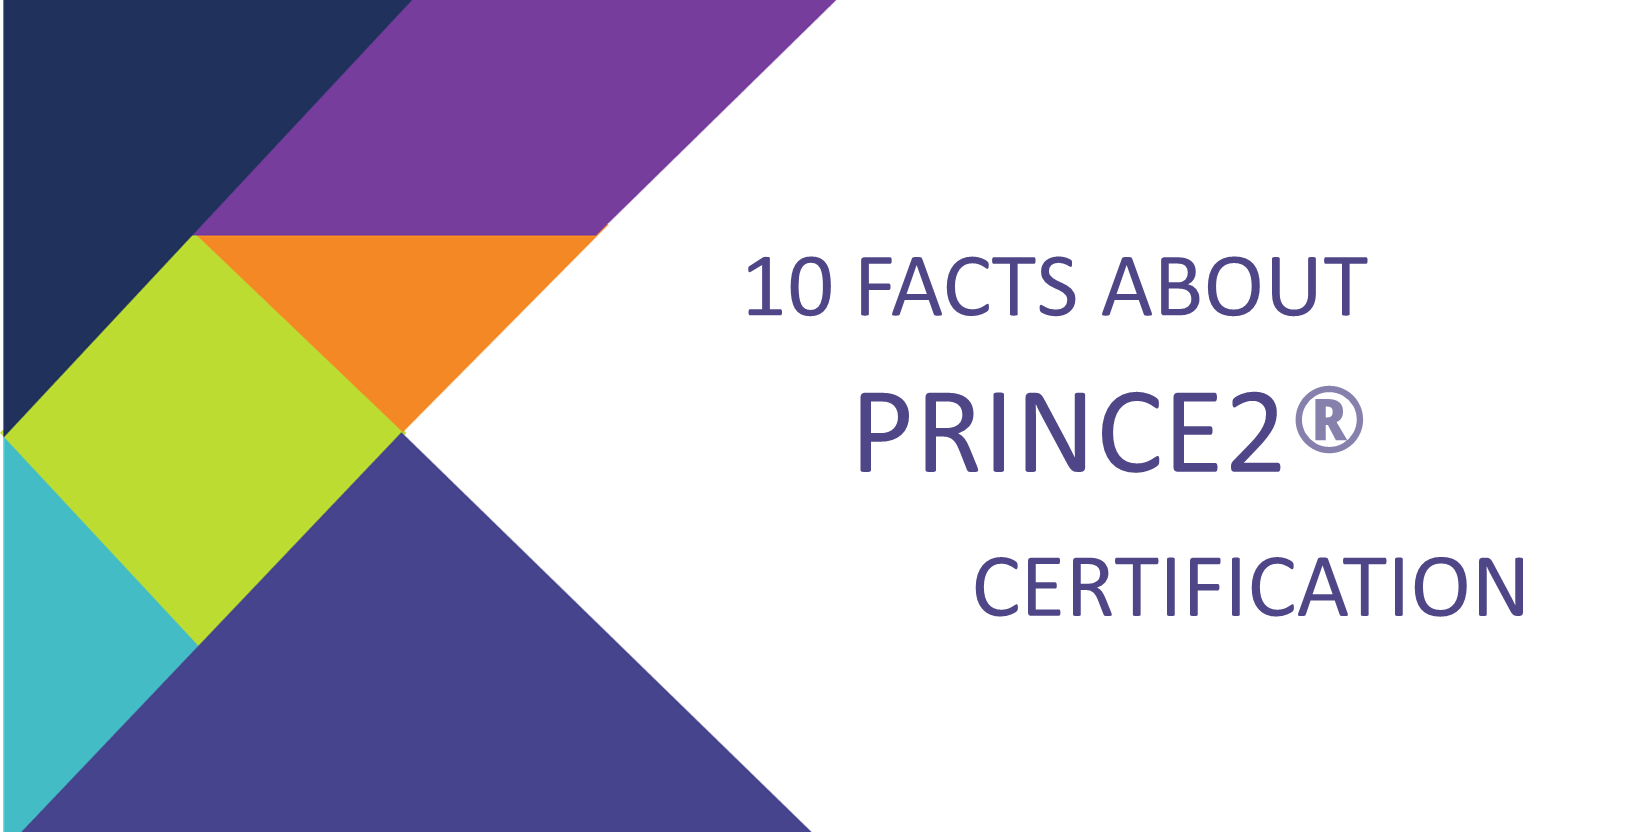 10 facts about prince2 certification prince2 certification exam 10 facts about prince2 certification xflitez Images